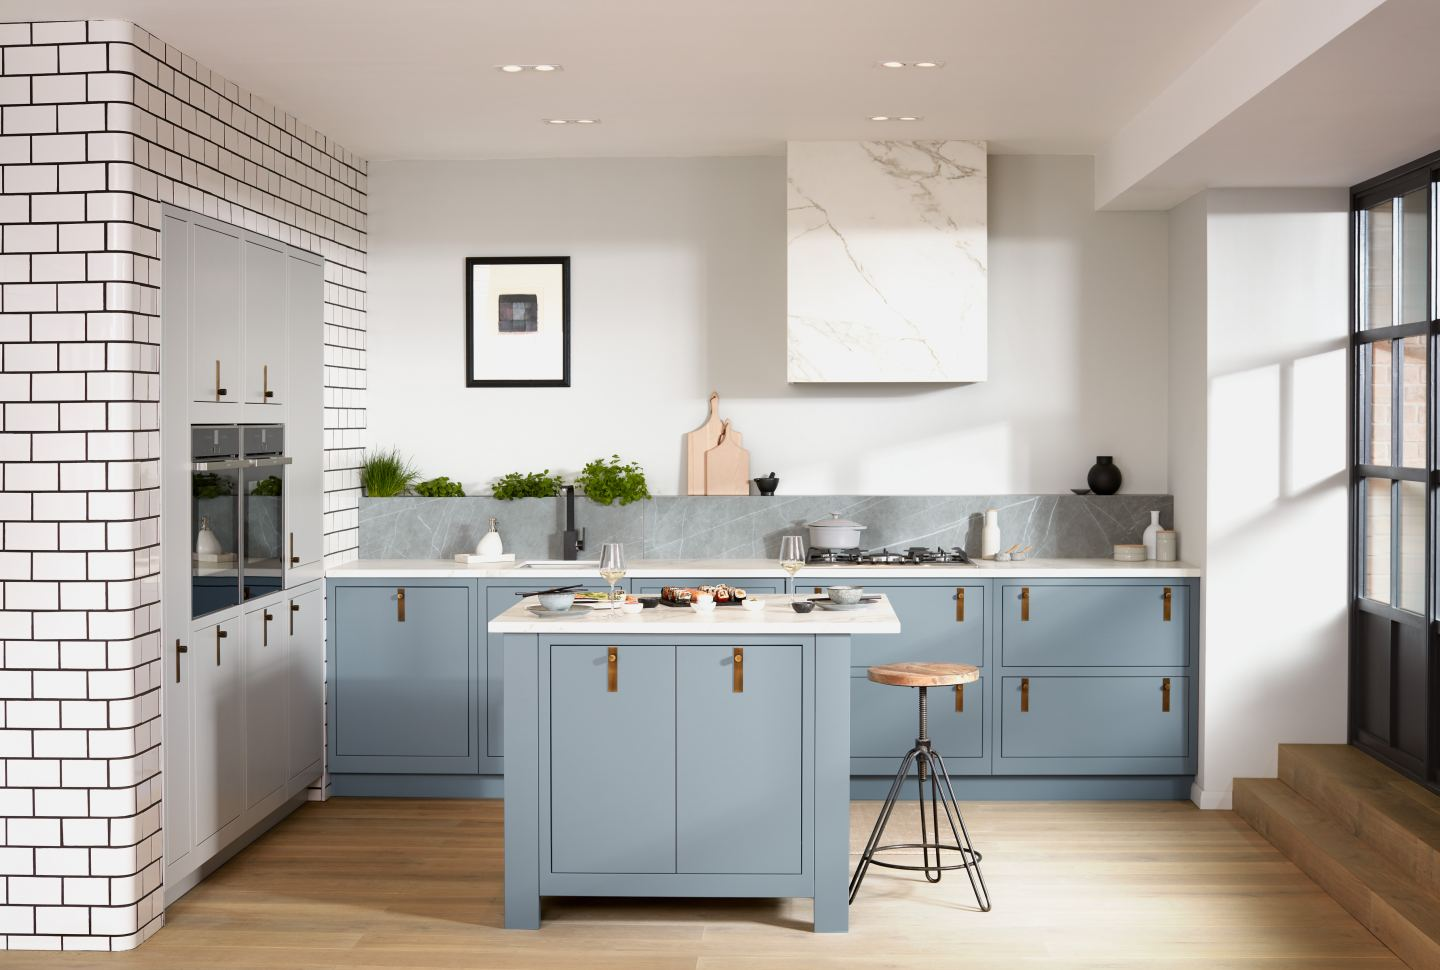 LifeKitchens-RefinedLook.jpg